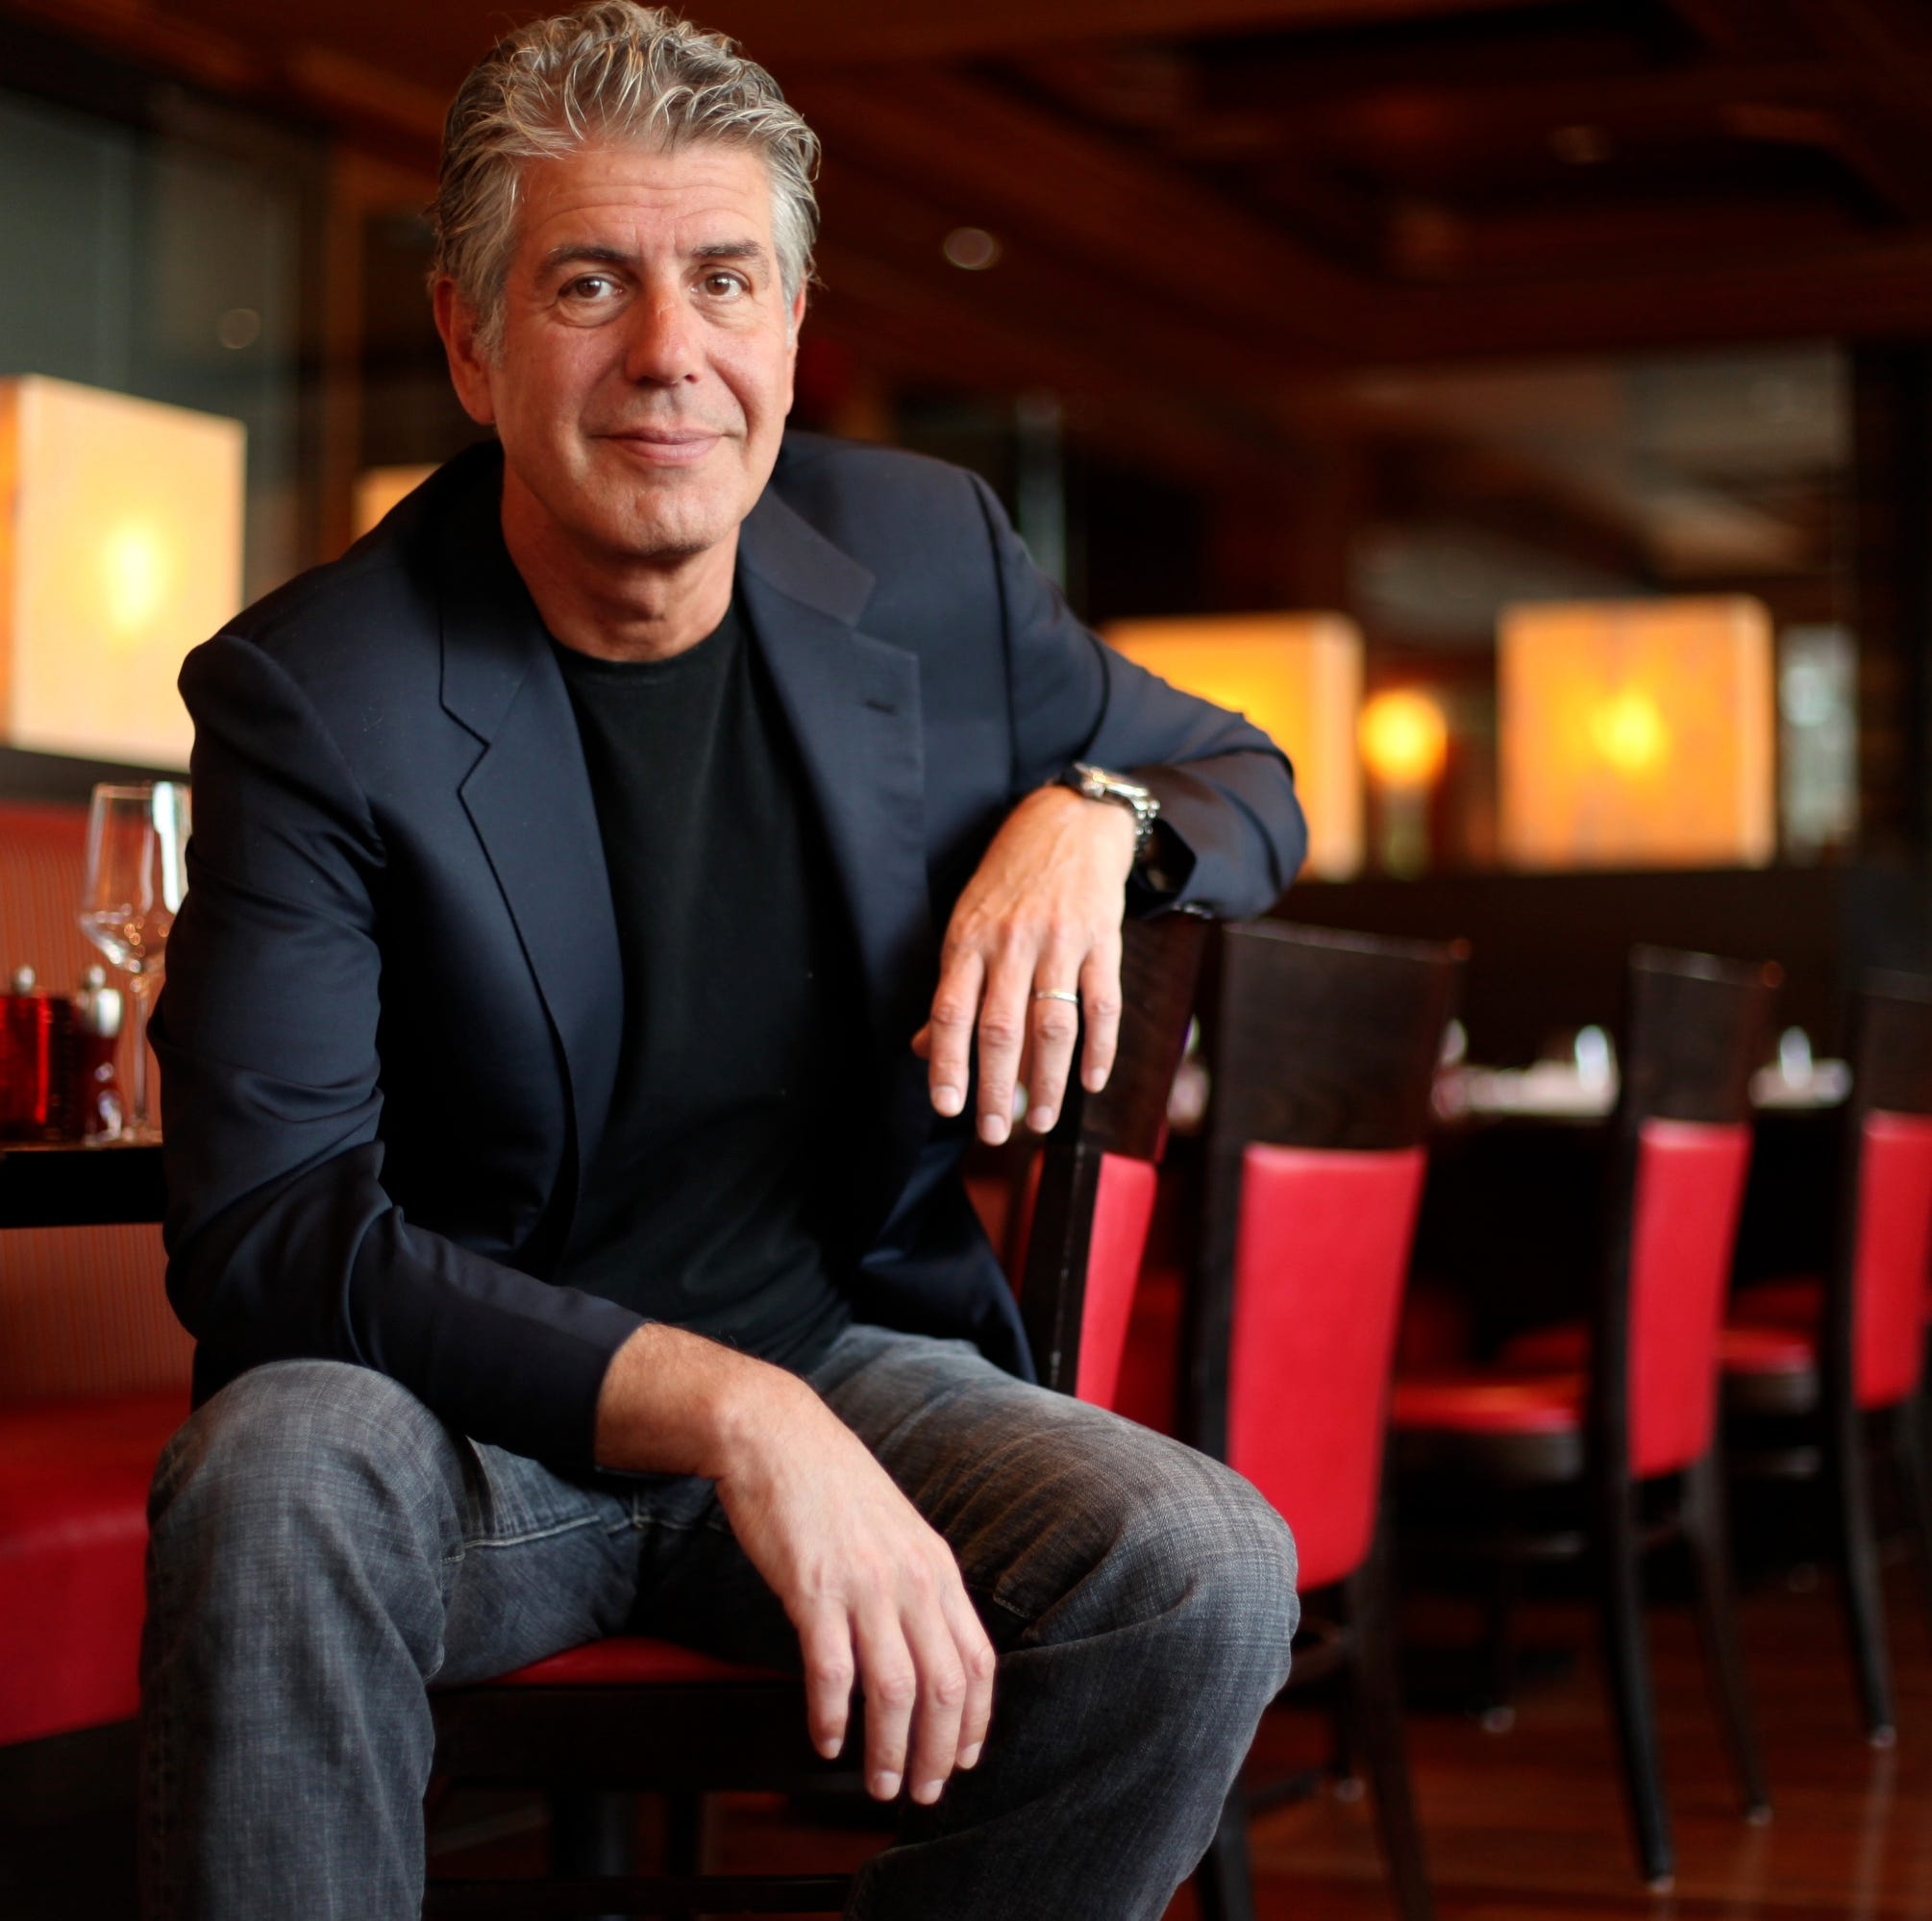 N.J. Restaurants: Denim to host dinner in memory of Anthony Bourdain